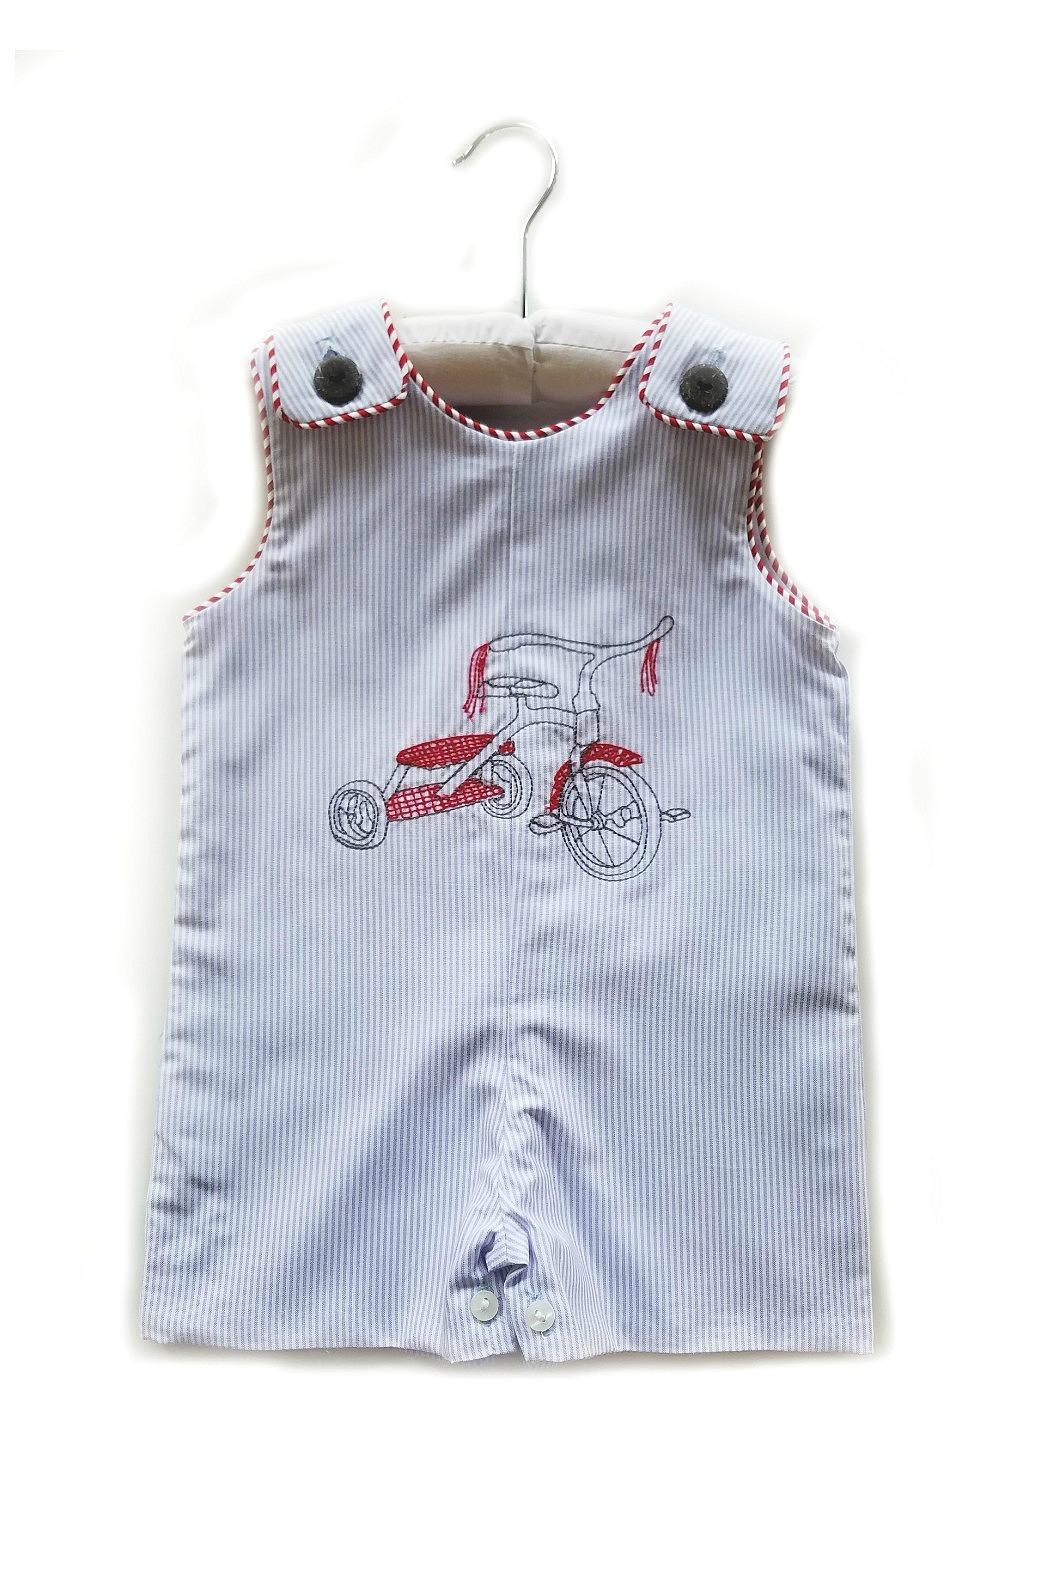 78c93ebbd La Jenns Red-Tricycle-Embroidered-Jon-Jon from South Carolina by The ...